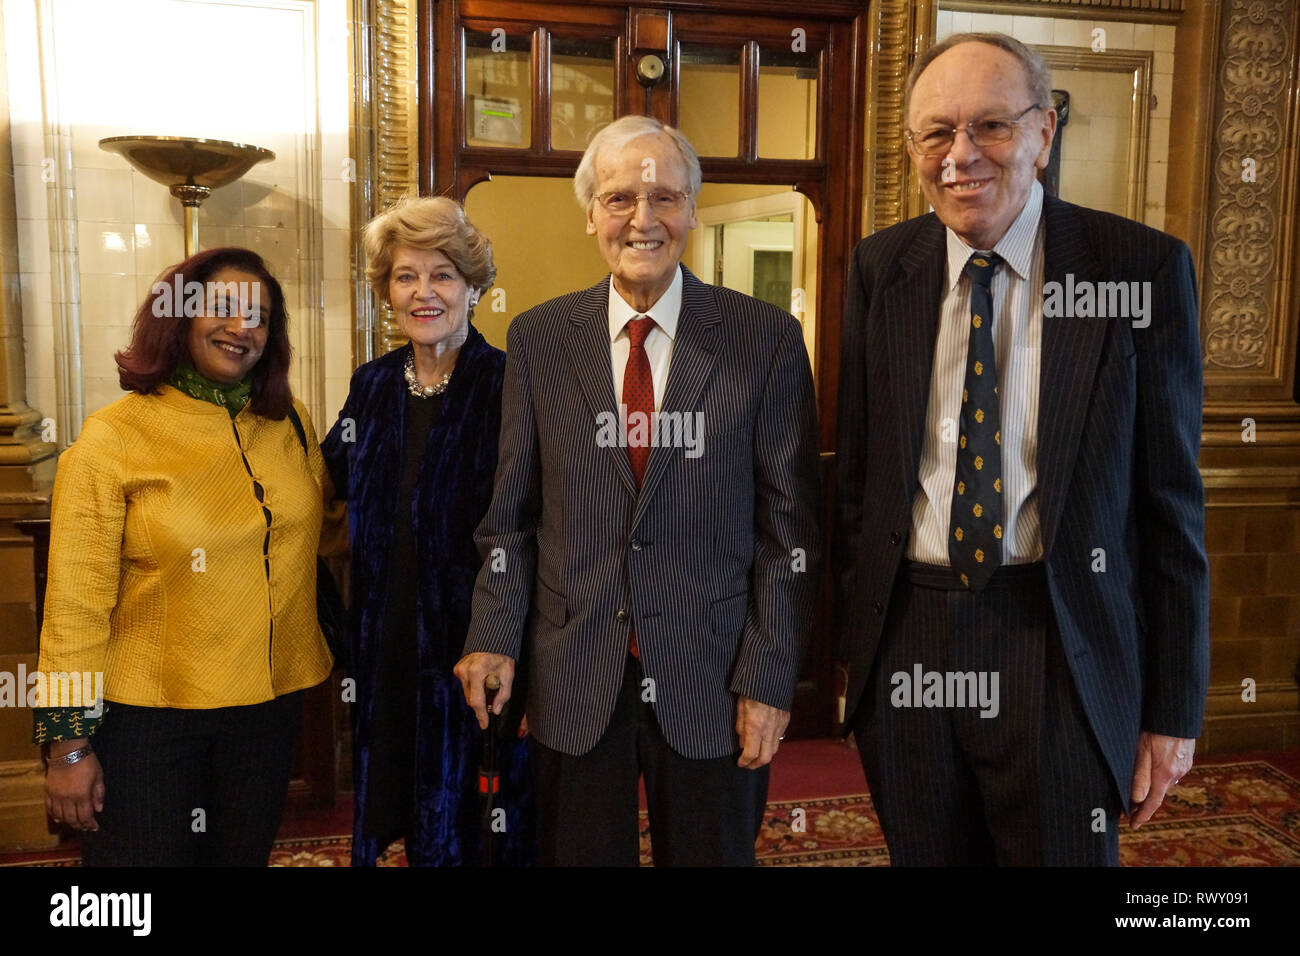 London, UK. 07th Mar, 2019. Sunny Singh, Annie Parsons, Nicholas Parsons, Nicholas Parsons, actor and host of long-running Just a Minute, Peter Tatchell, human rights activist, and Valerie Brandes, founder and publisher of Jacaranda Books accept Honorary Membership of the National Liberal Club at a luncheon hosted by NLC Chairman, Rupert Morriss. Credit: Peter Hogan/Alamy Live News - Stock Image